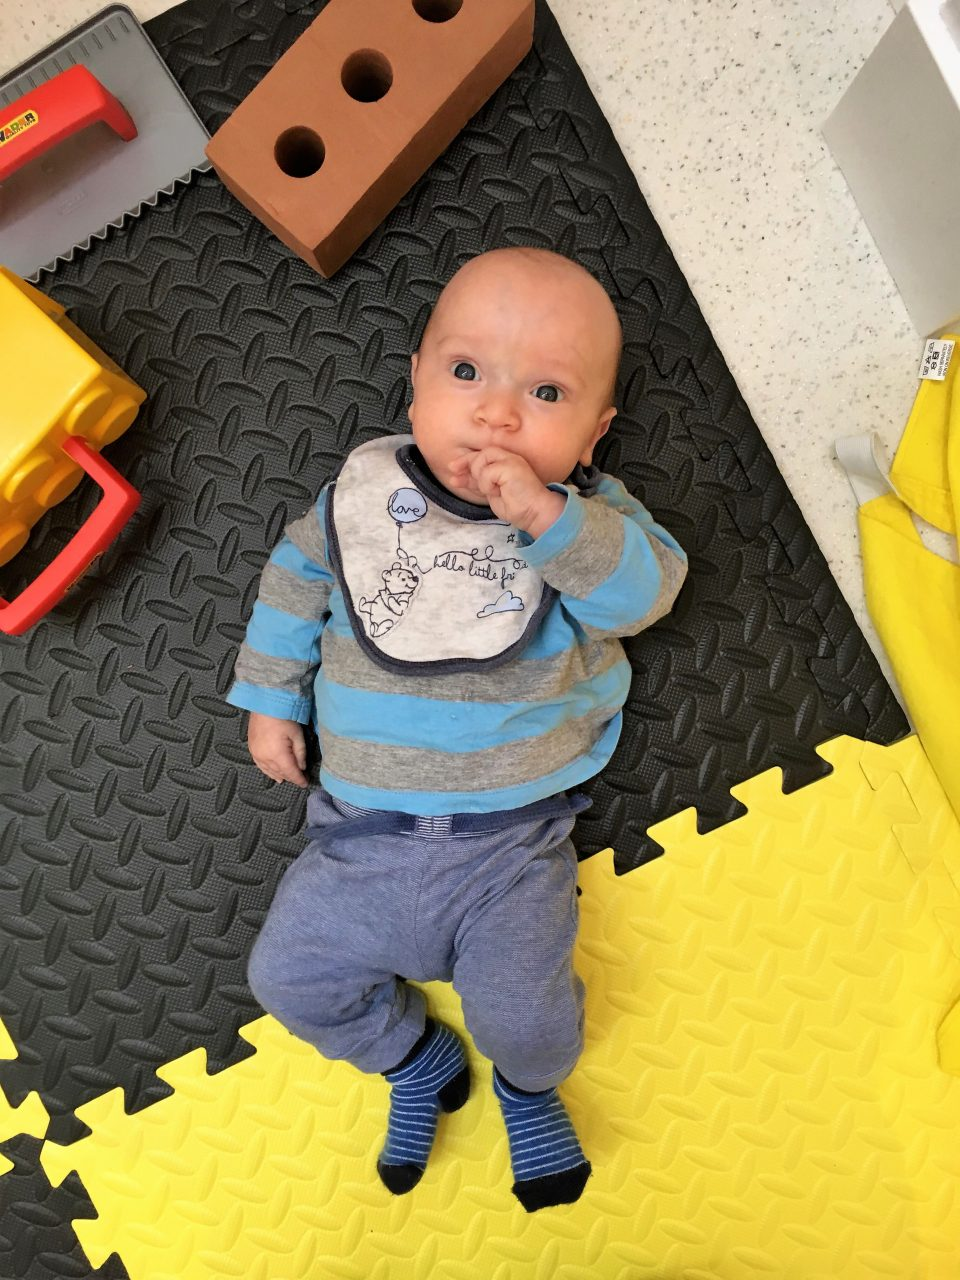 William laying on the floor in little play town